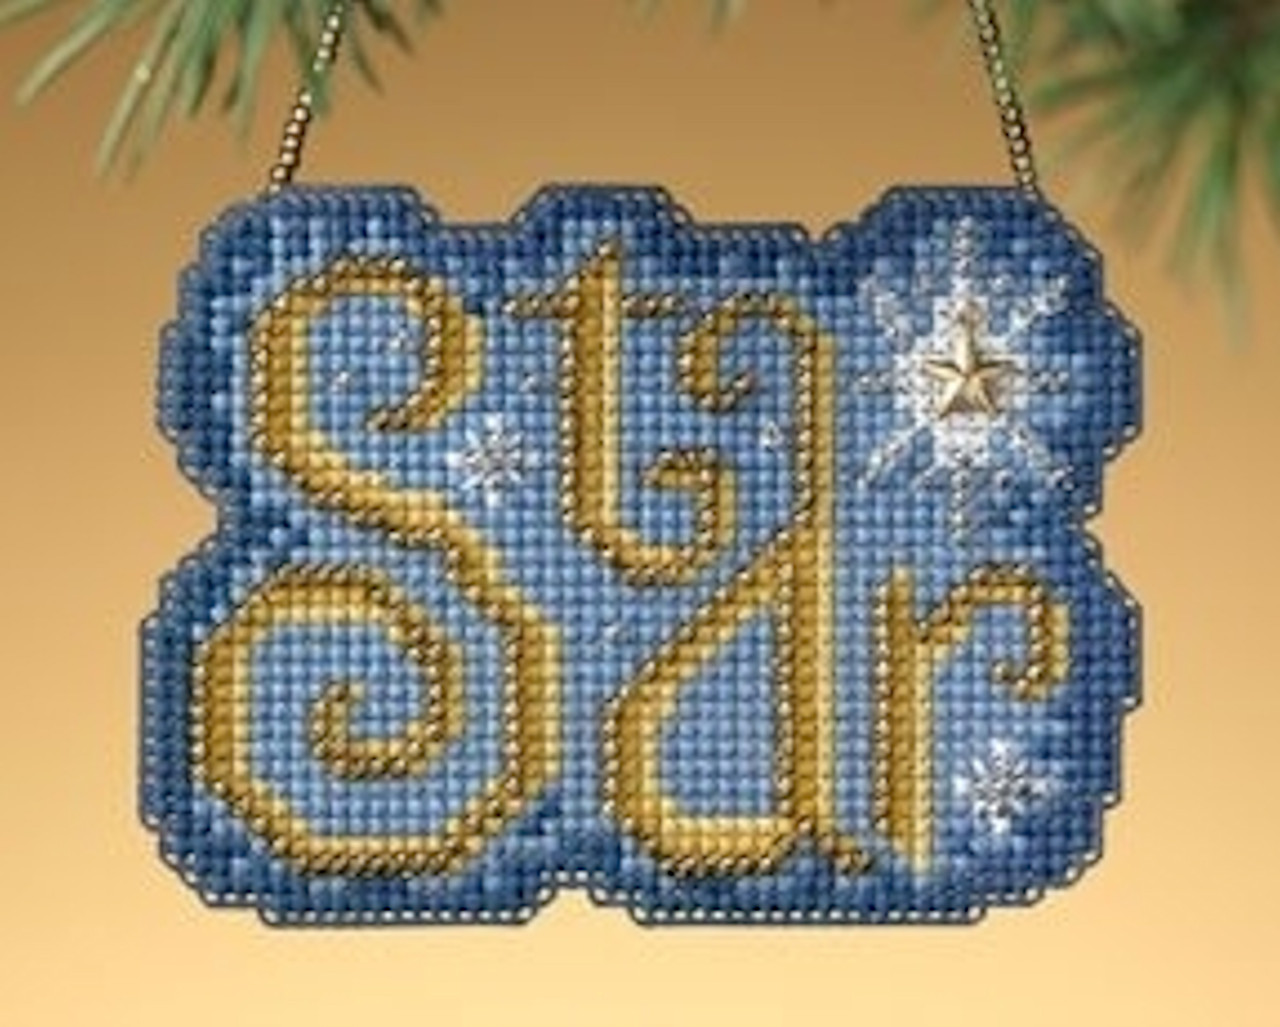 Mill Hill 2009 Winter Greetings Charmed Ornament - Star